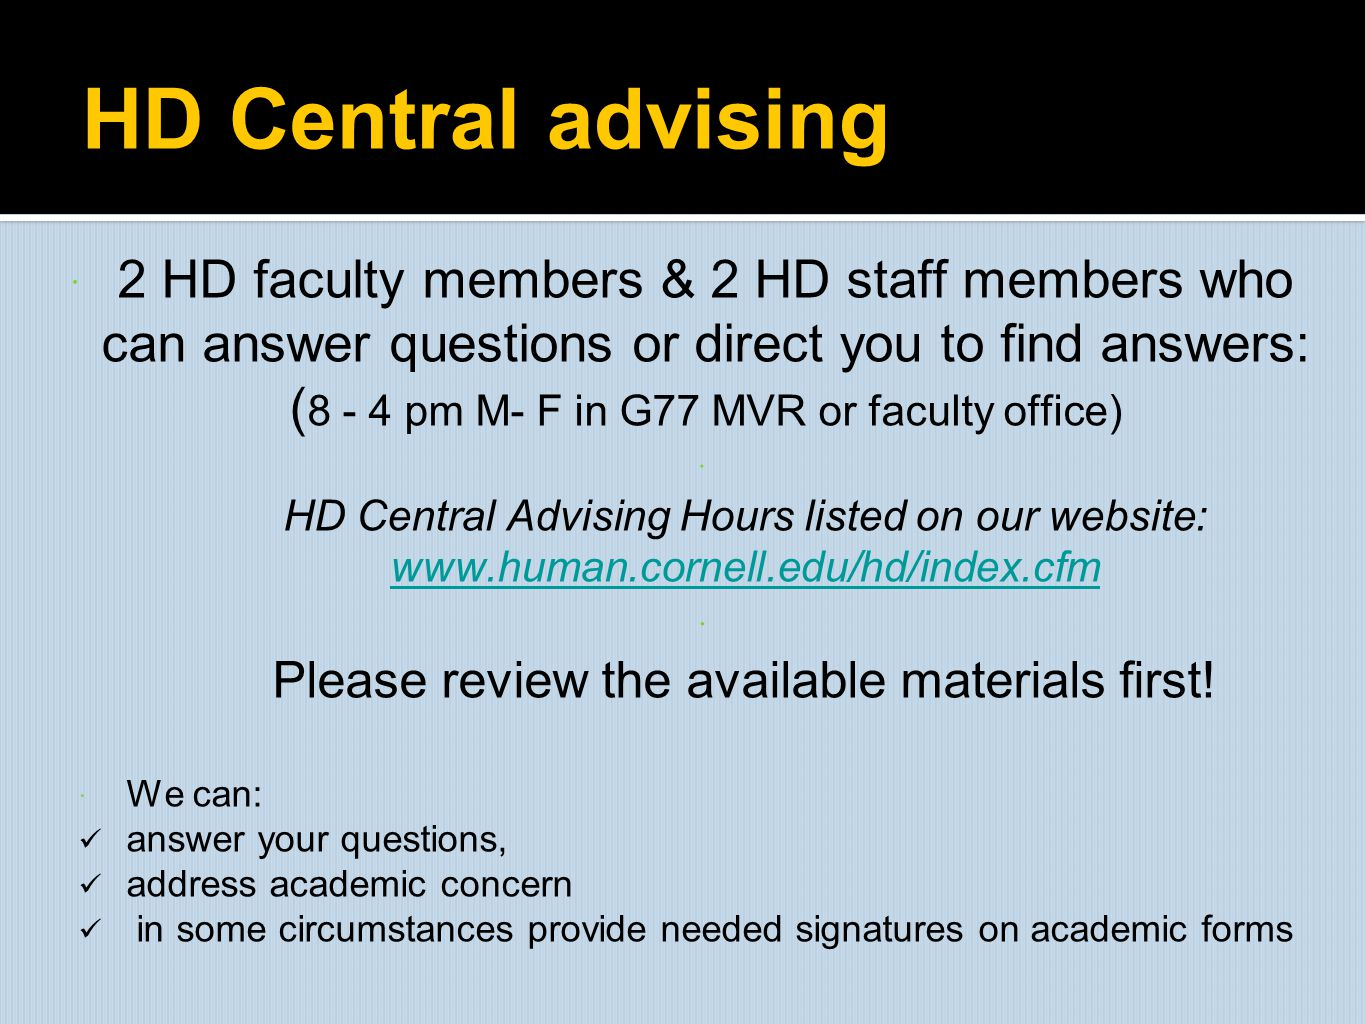 Please review the available materials first!